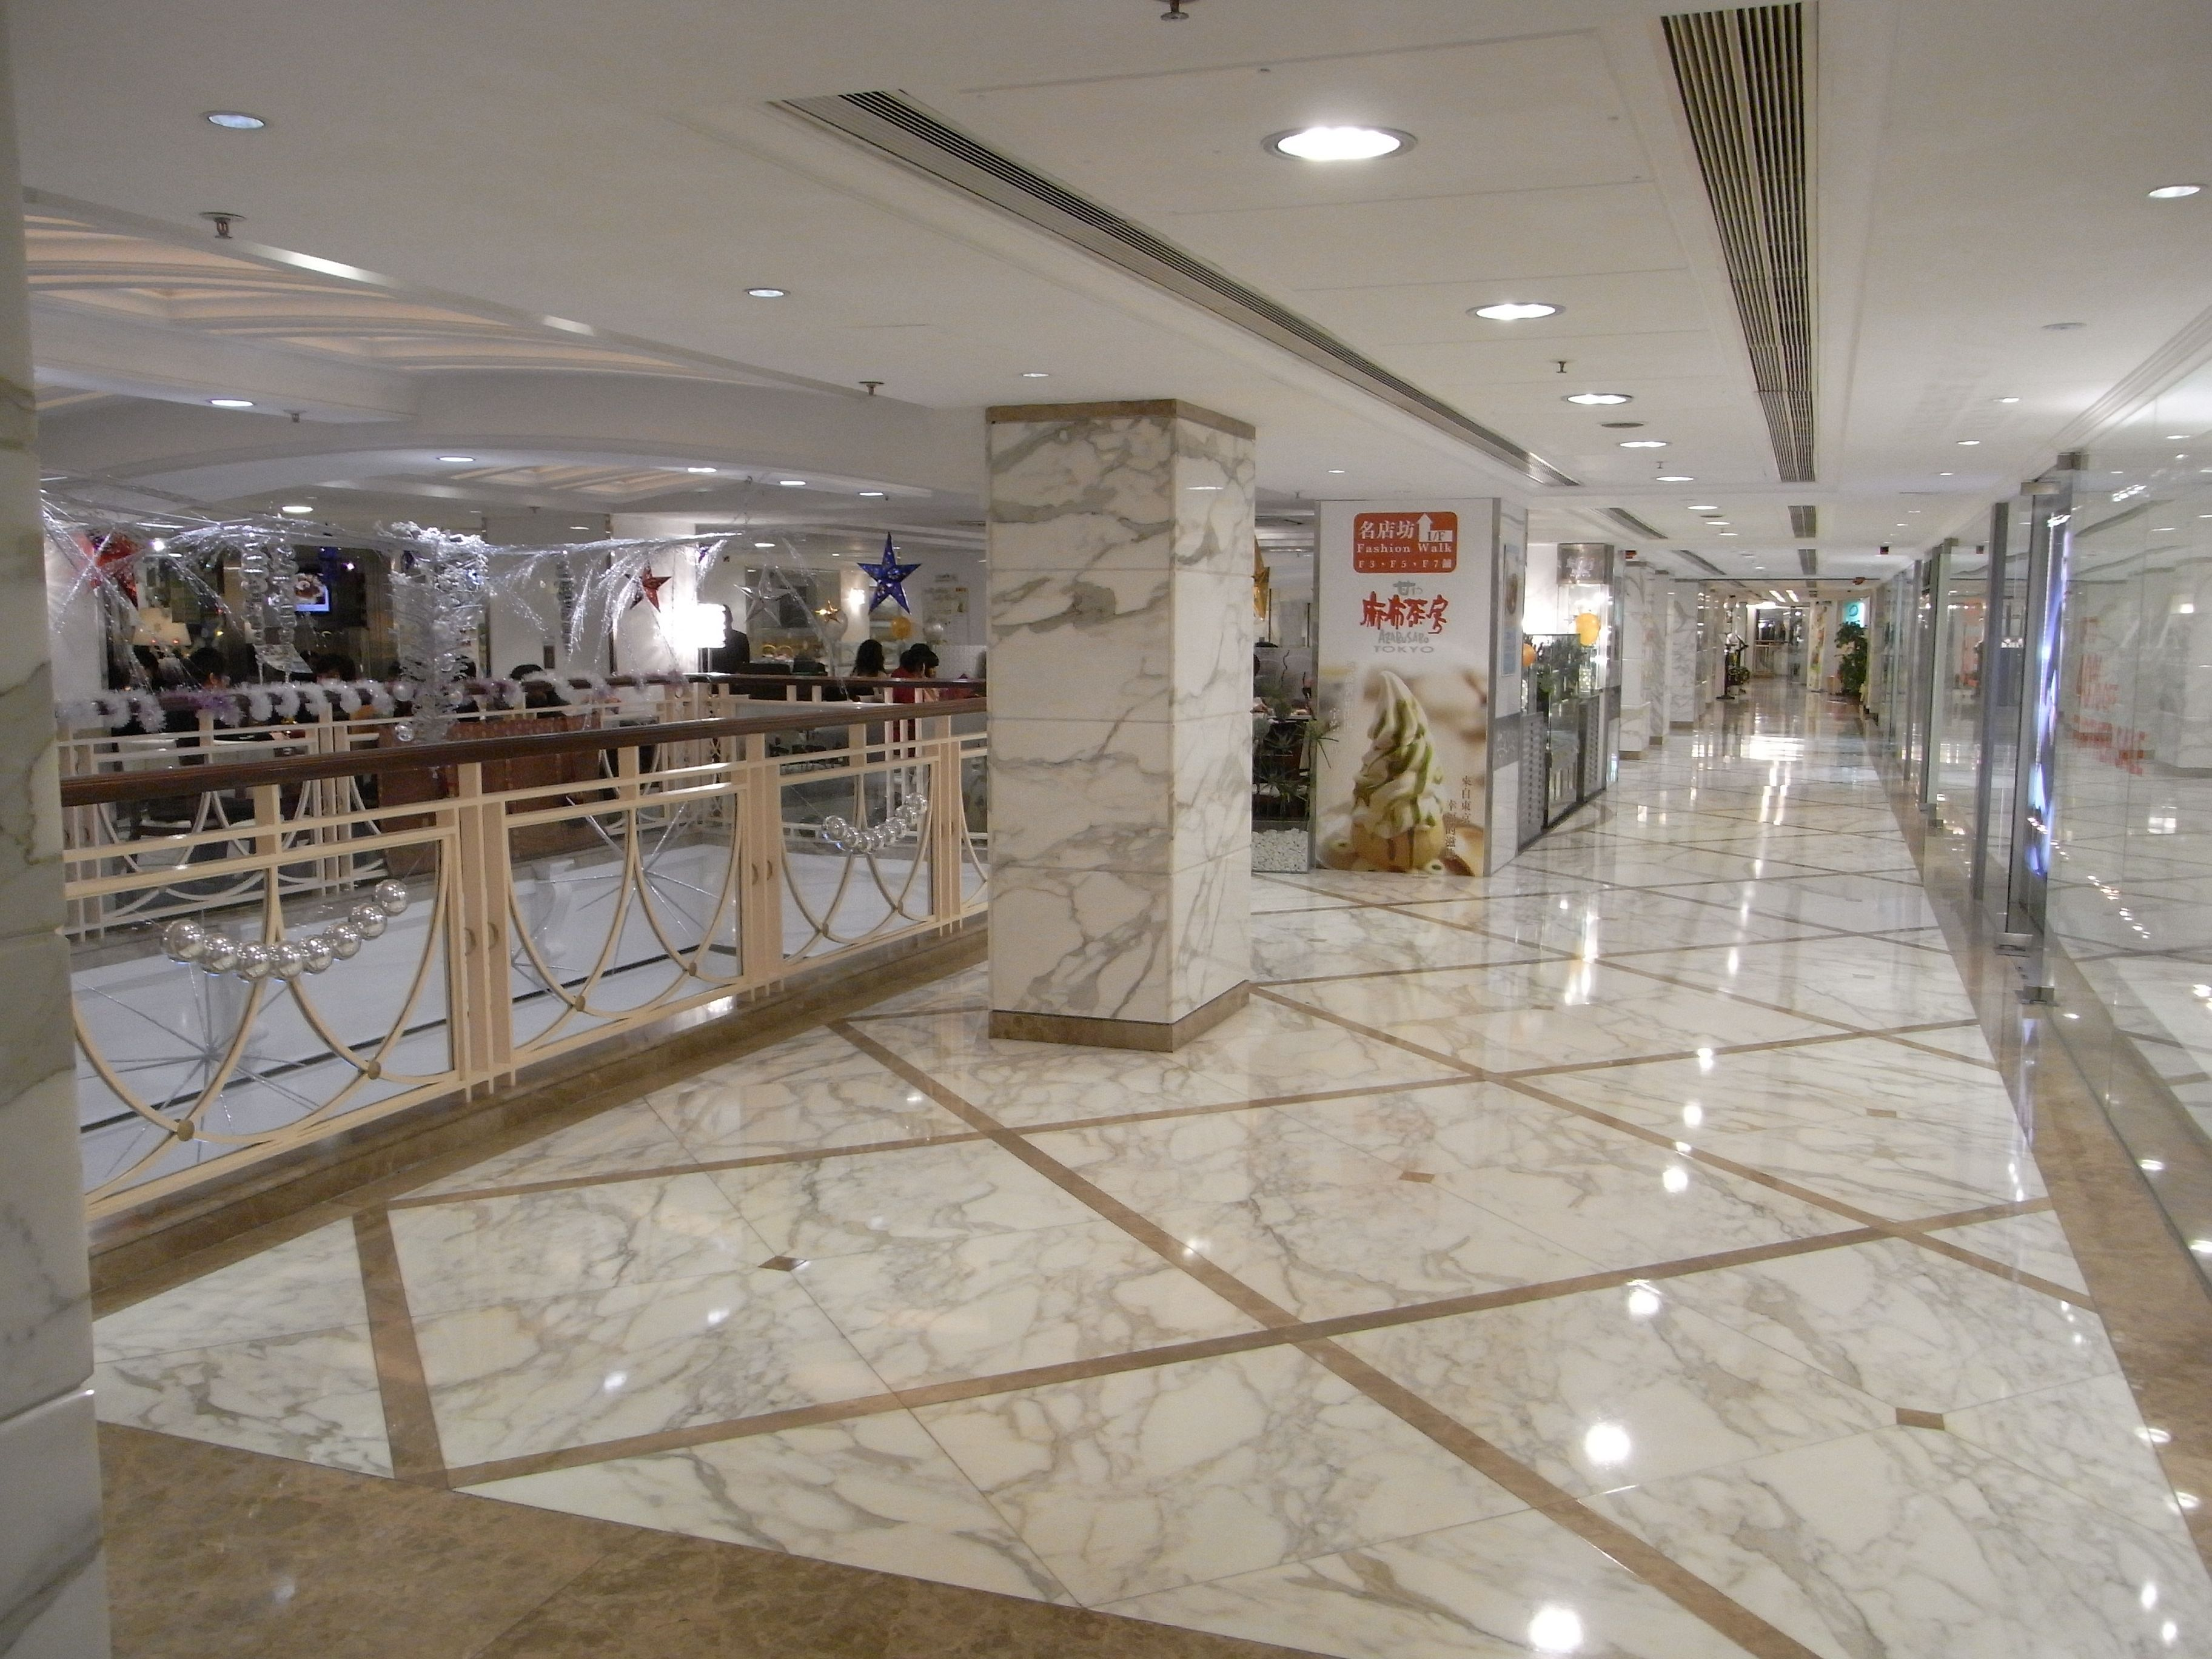 1000 images about entrance lobby marble on pinterest marble floor lobbies and marbles